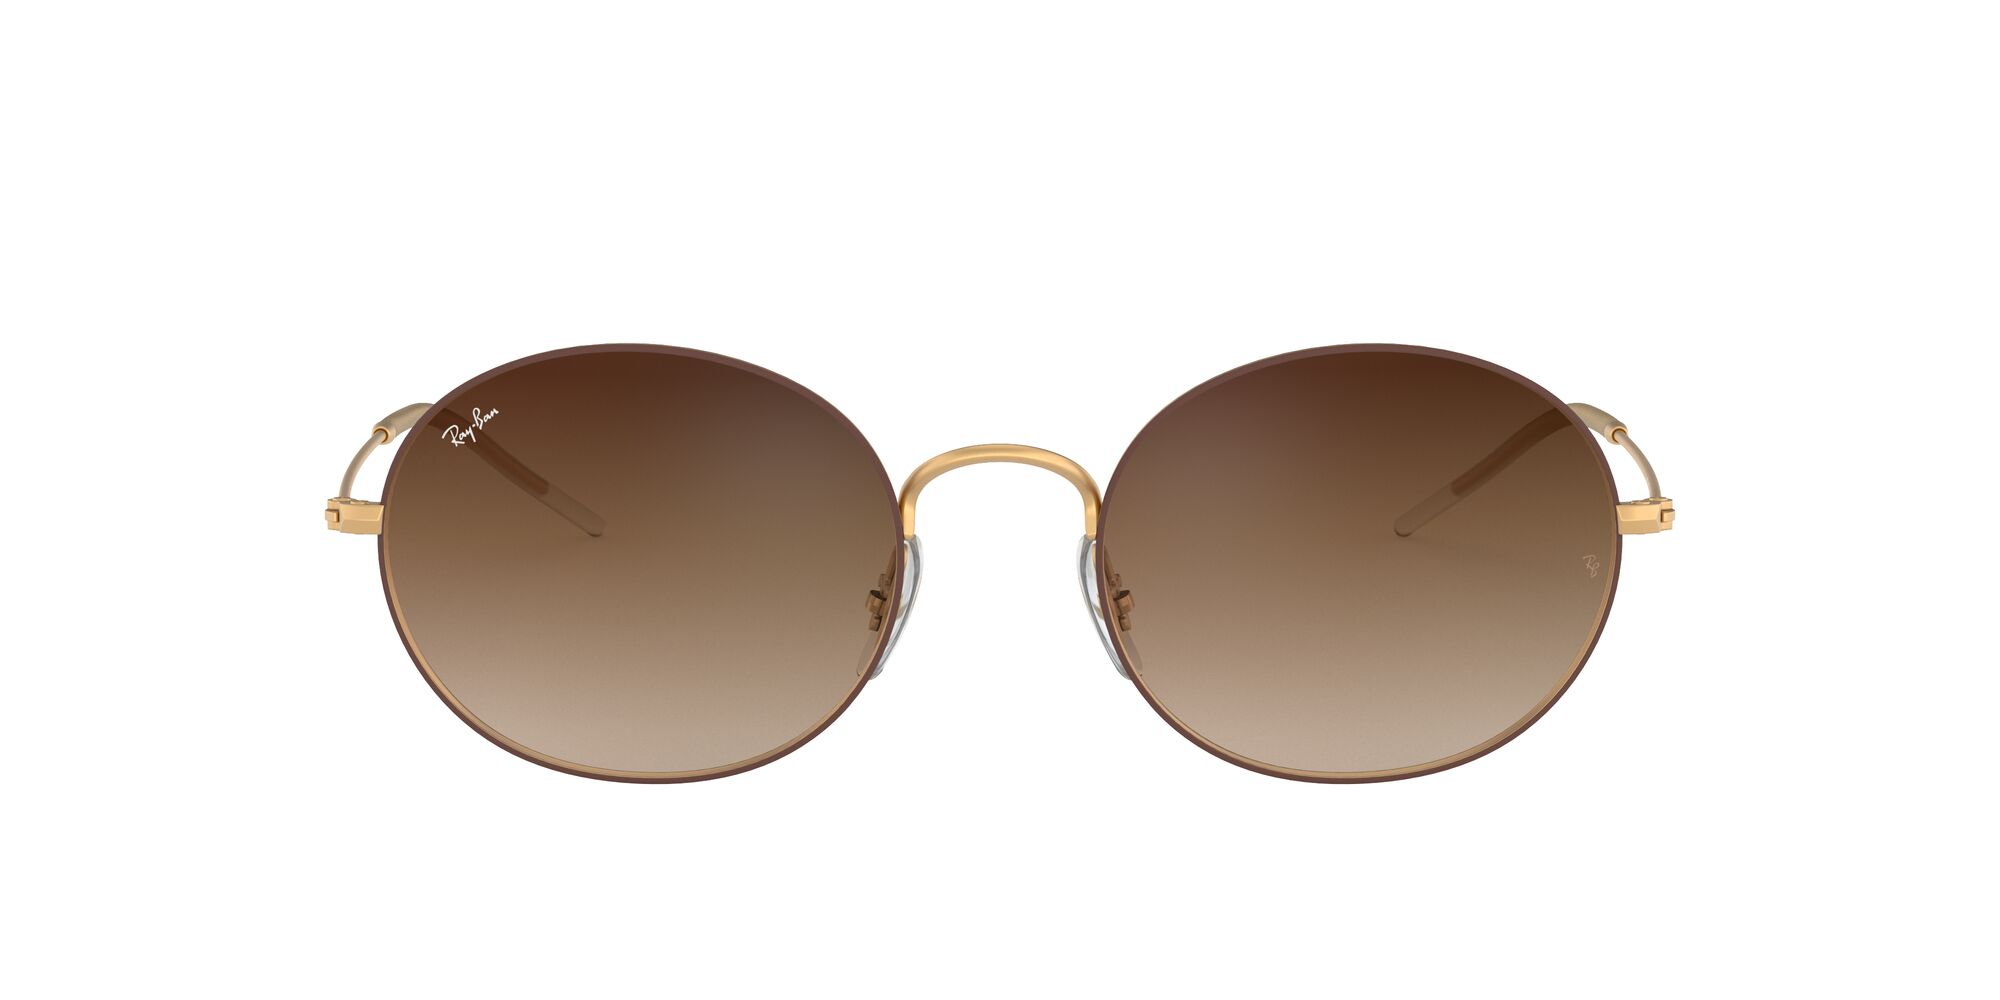 Front Ray-Ban Ray-Ban 0RB3594 9115S0 53/20 Goud/Bruin